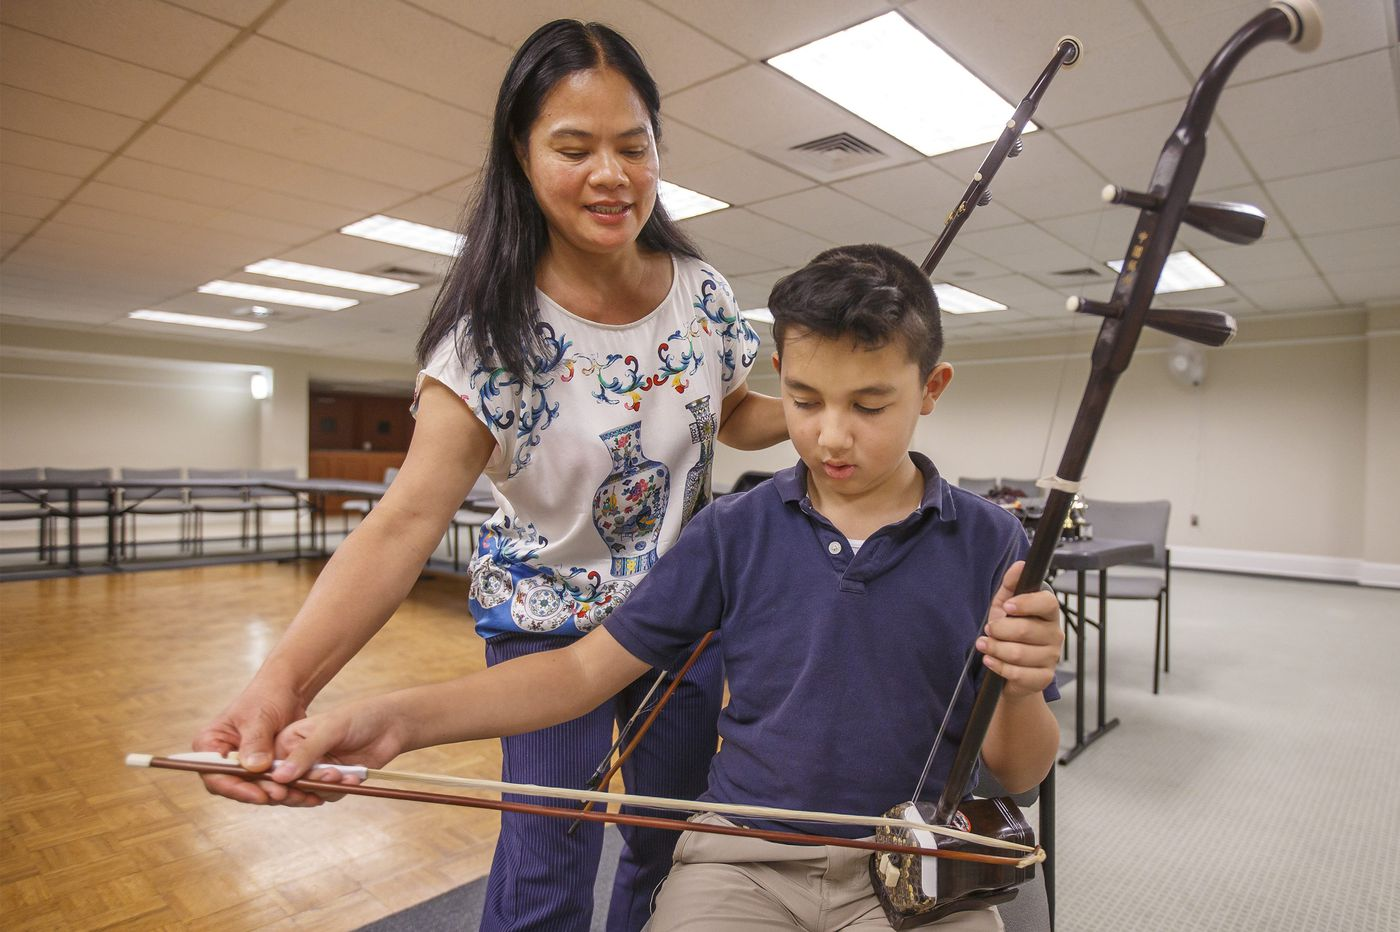 This erhu specialist is working to make Chinese music more visible in Philly